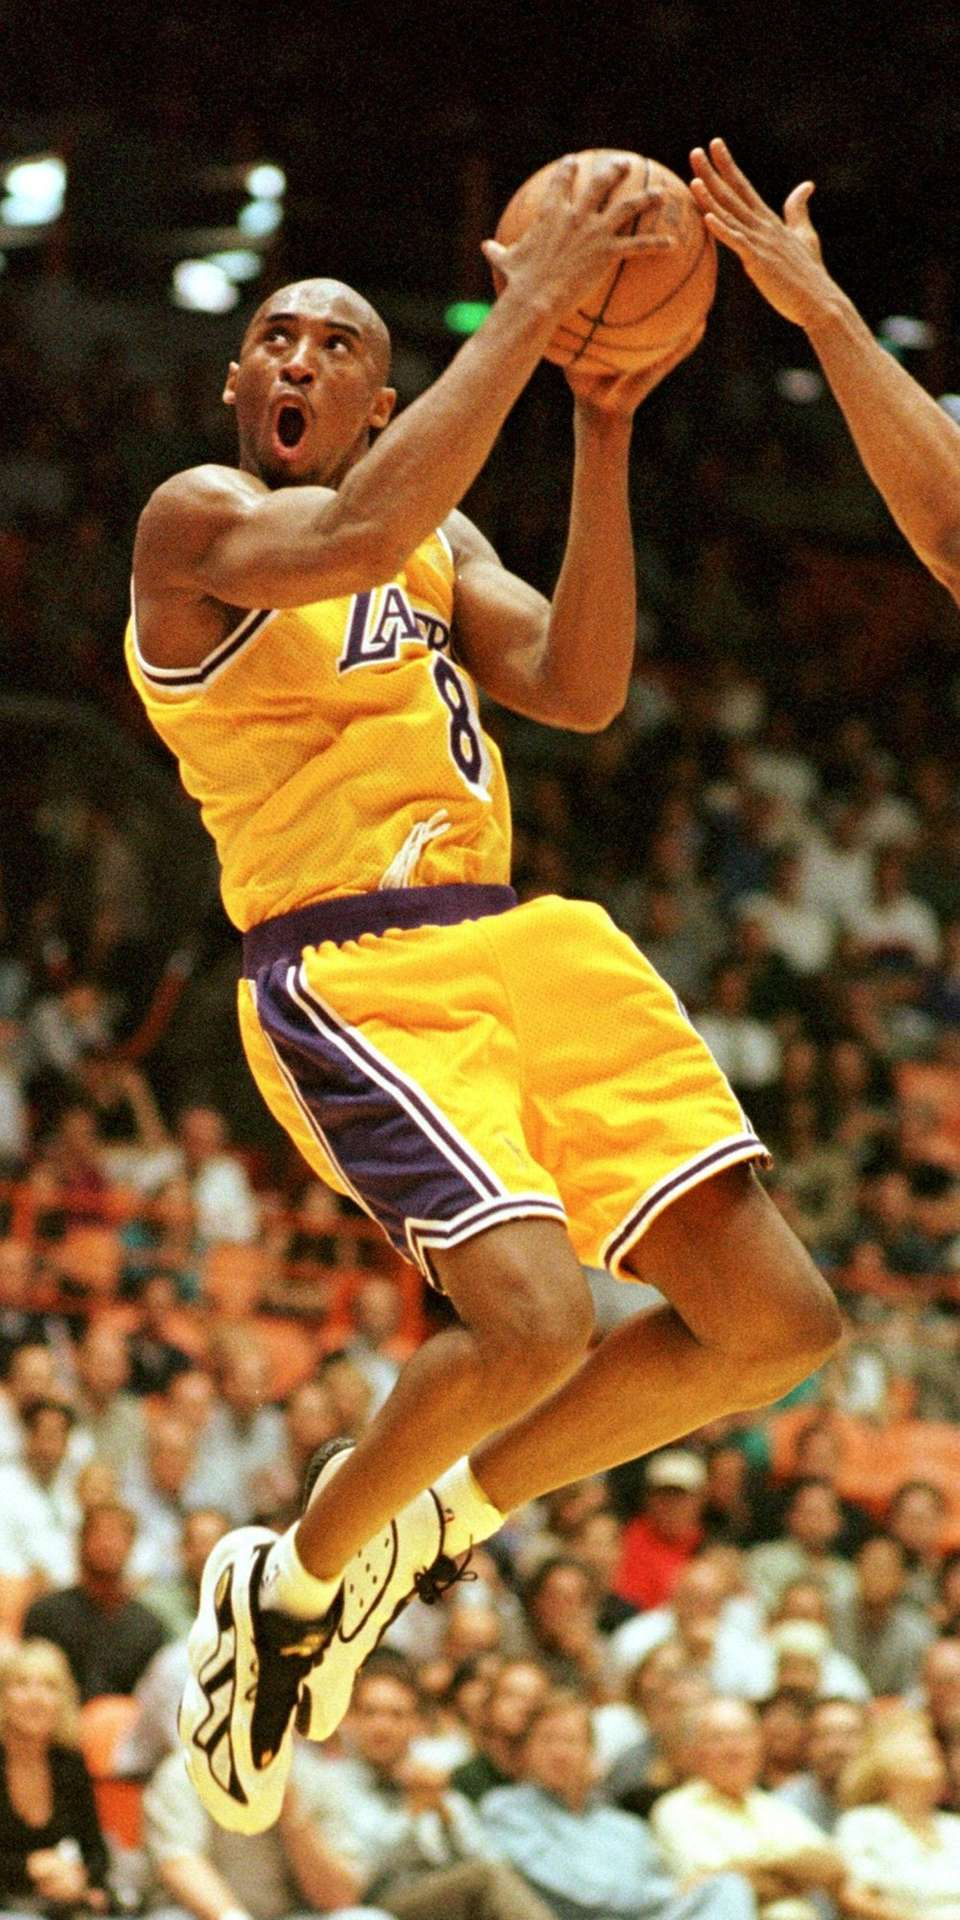 Kobe Bryant's star appeal first became evident on